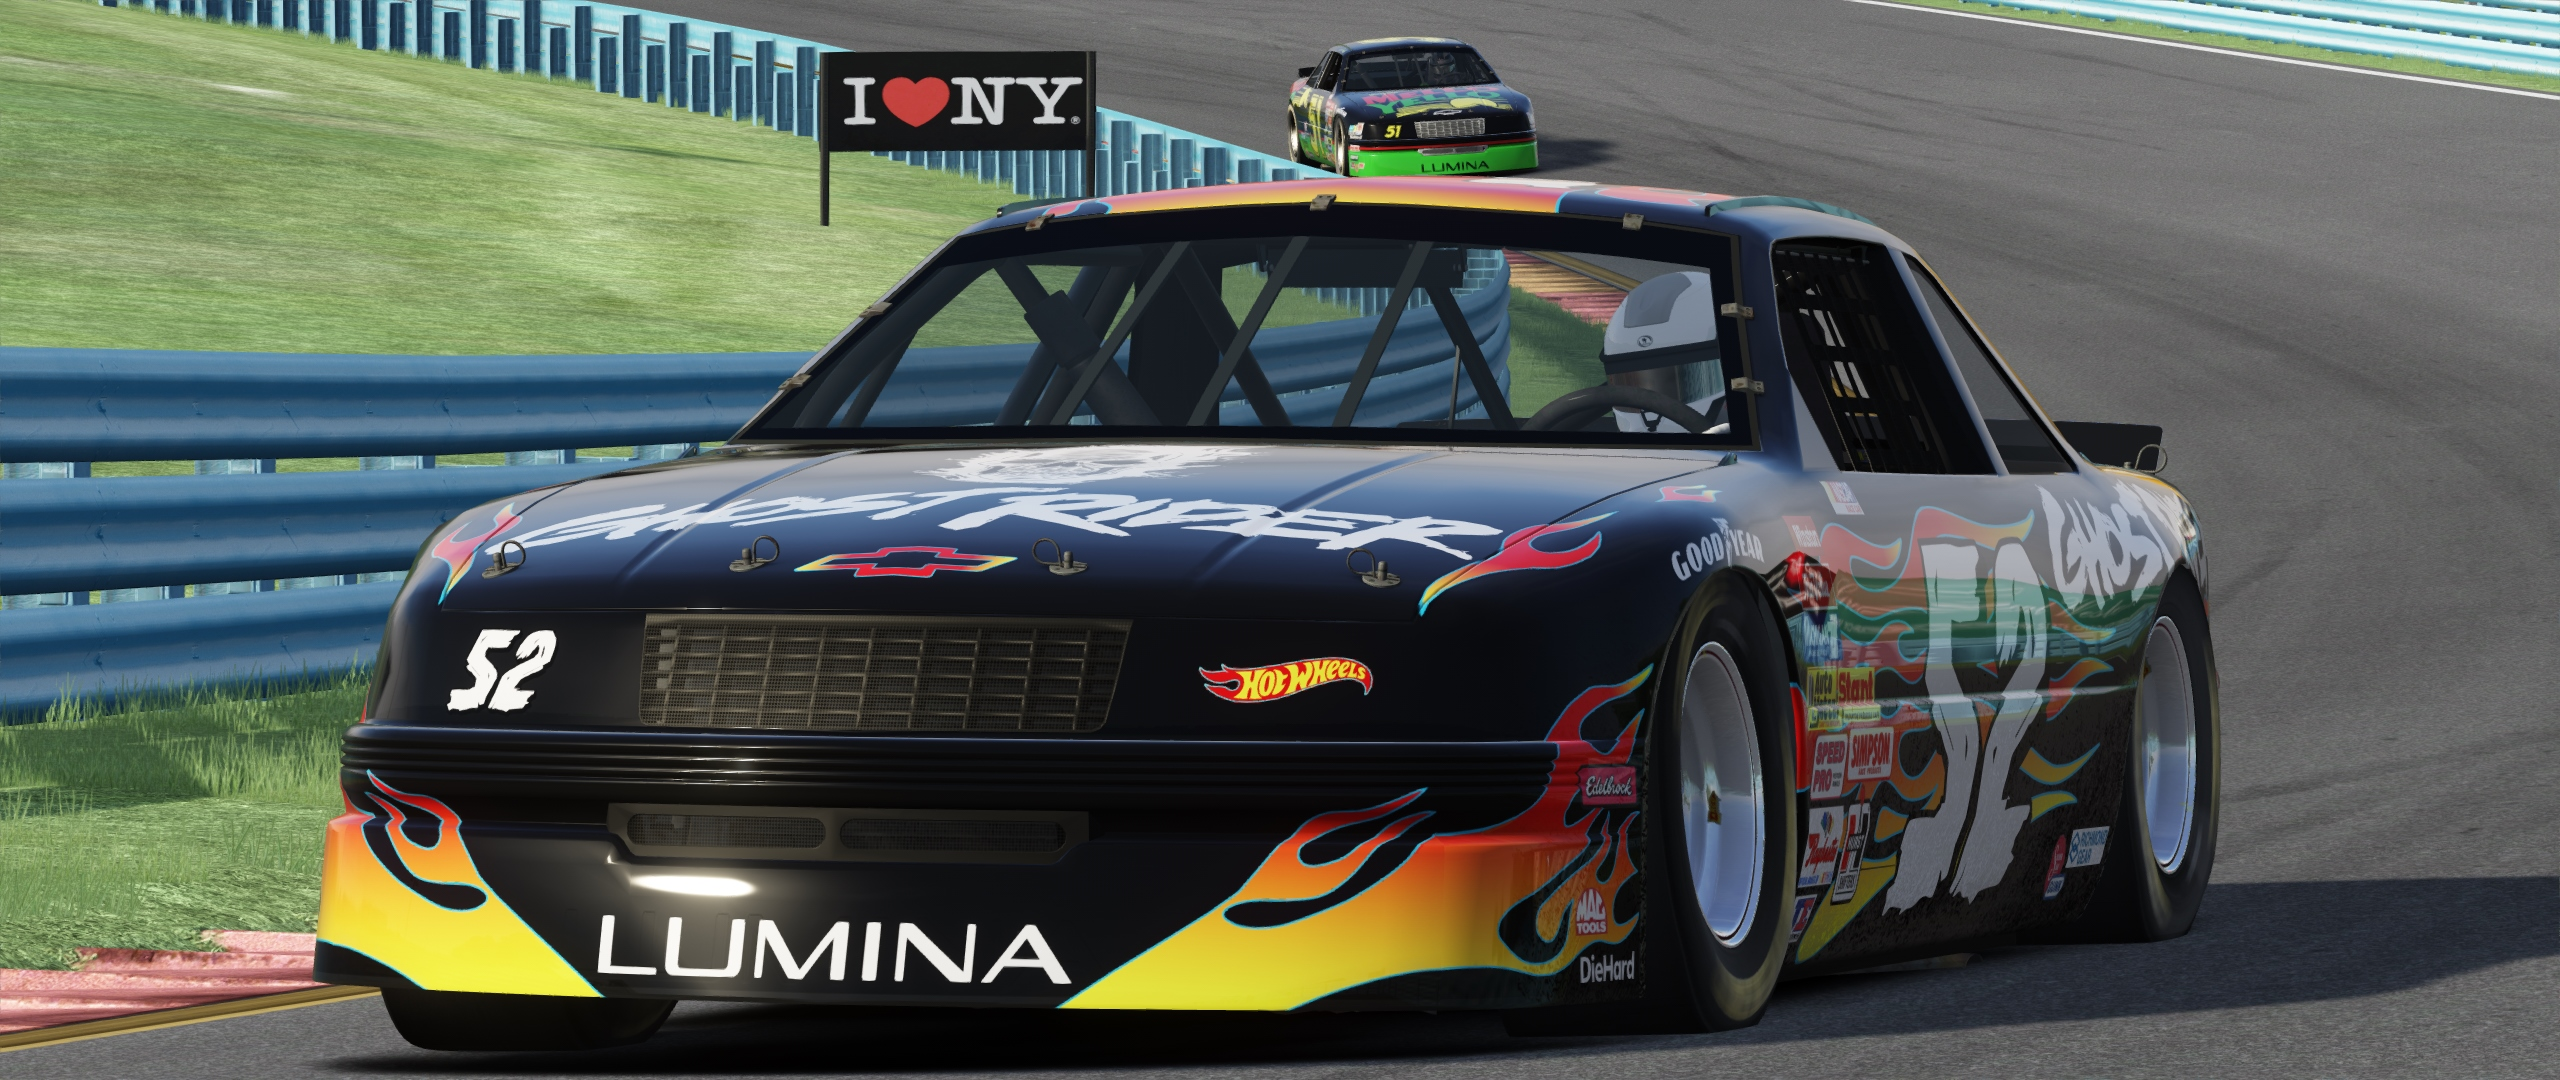 Screenshot_3to_1989_nascar_chevrolet_lumina_lilski_watkins_glen_16-10-119-23-40-57.jpg